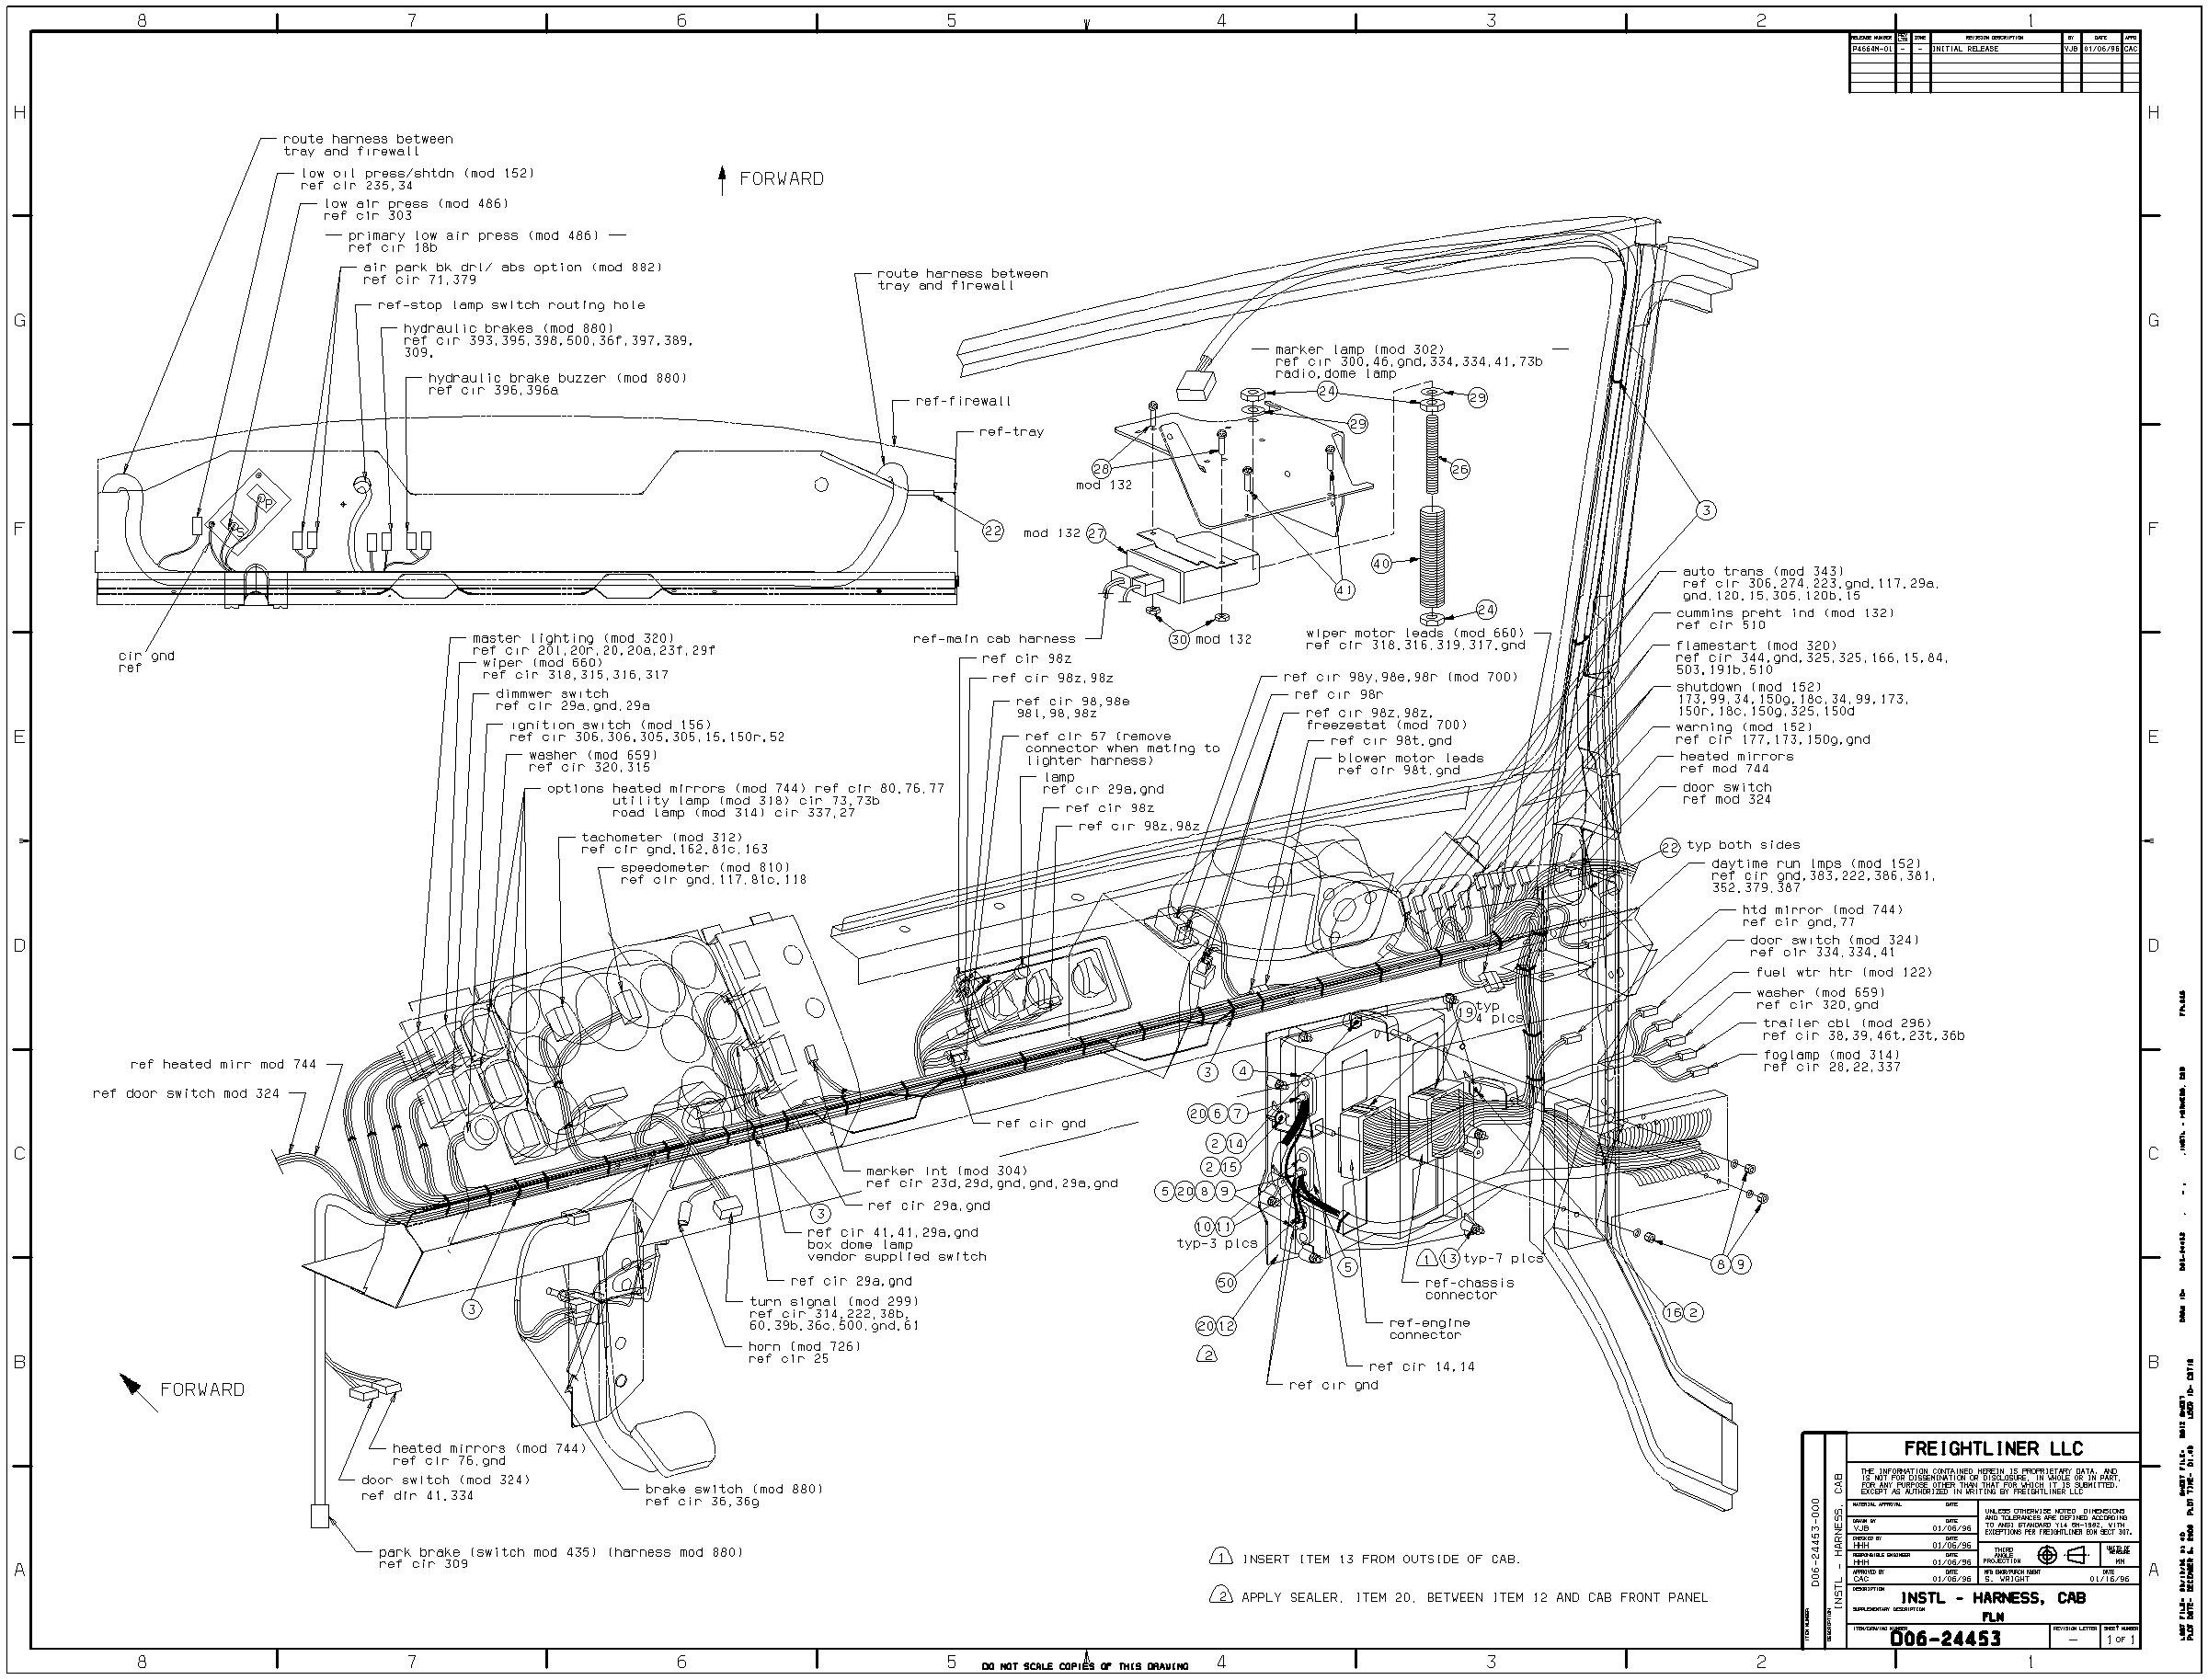 4f3bf0ae42df8d7941614d2dfd871856?resize=665%2C506 wiring schematics for a kenworth w900b readingrat net 2006 kenworth w900 wiring diagram at gsmx.co